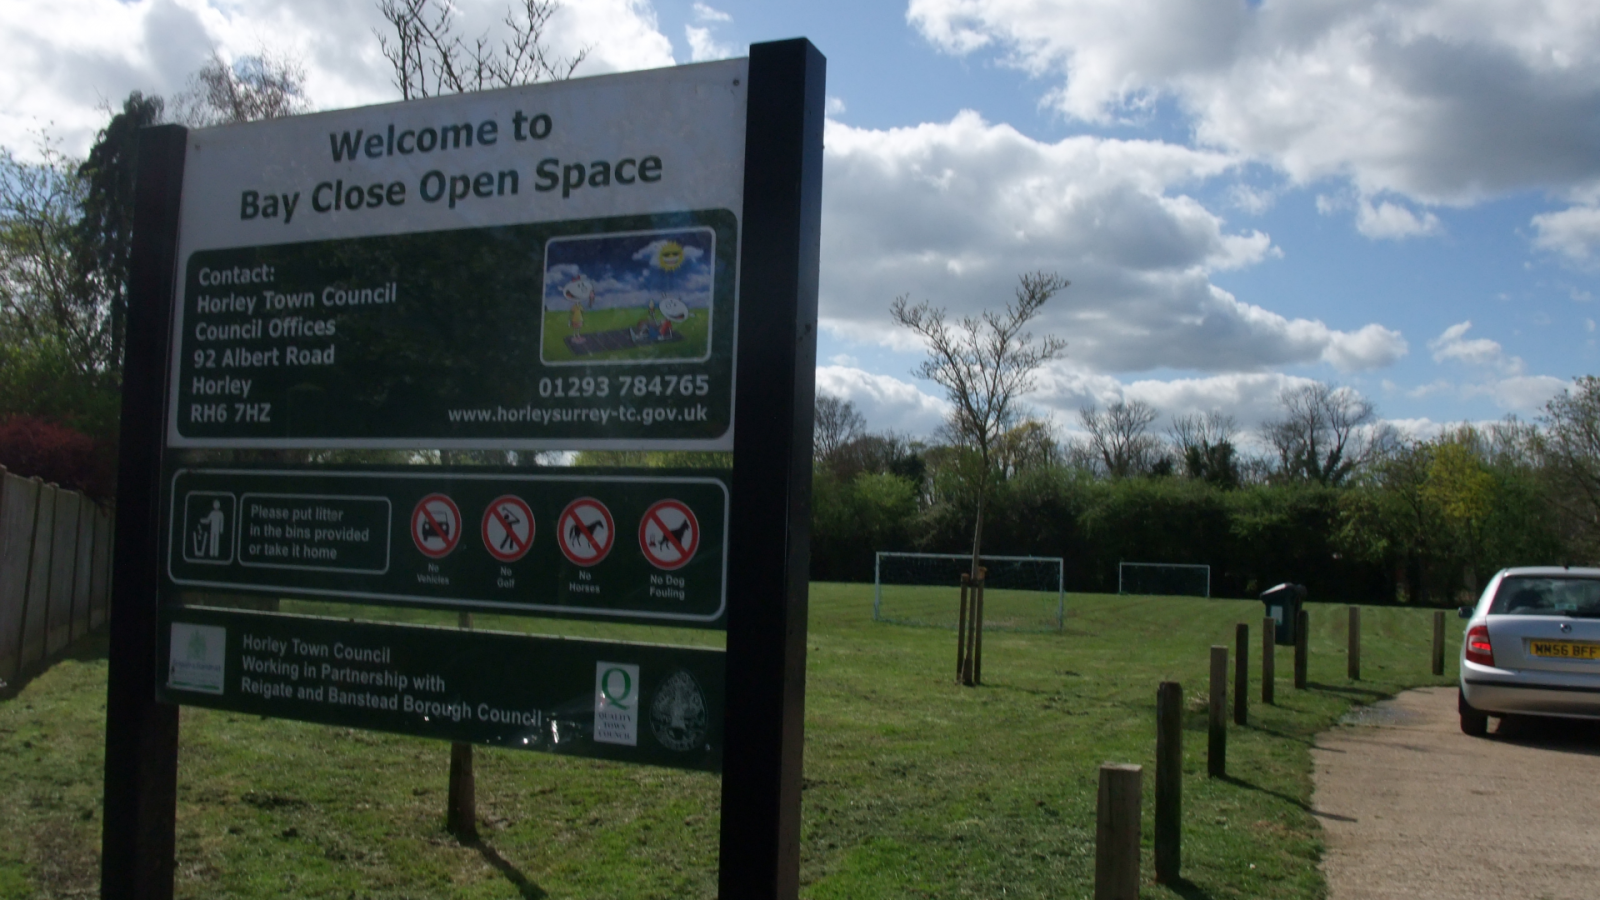 Photo of the entrance of Bay Close Open Space